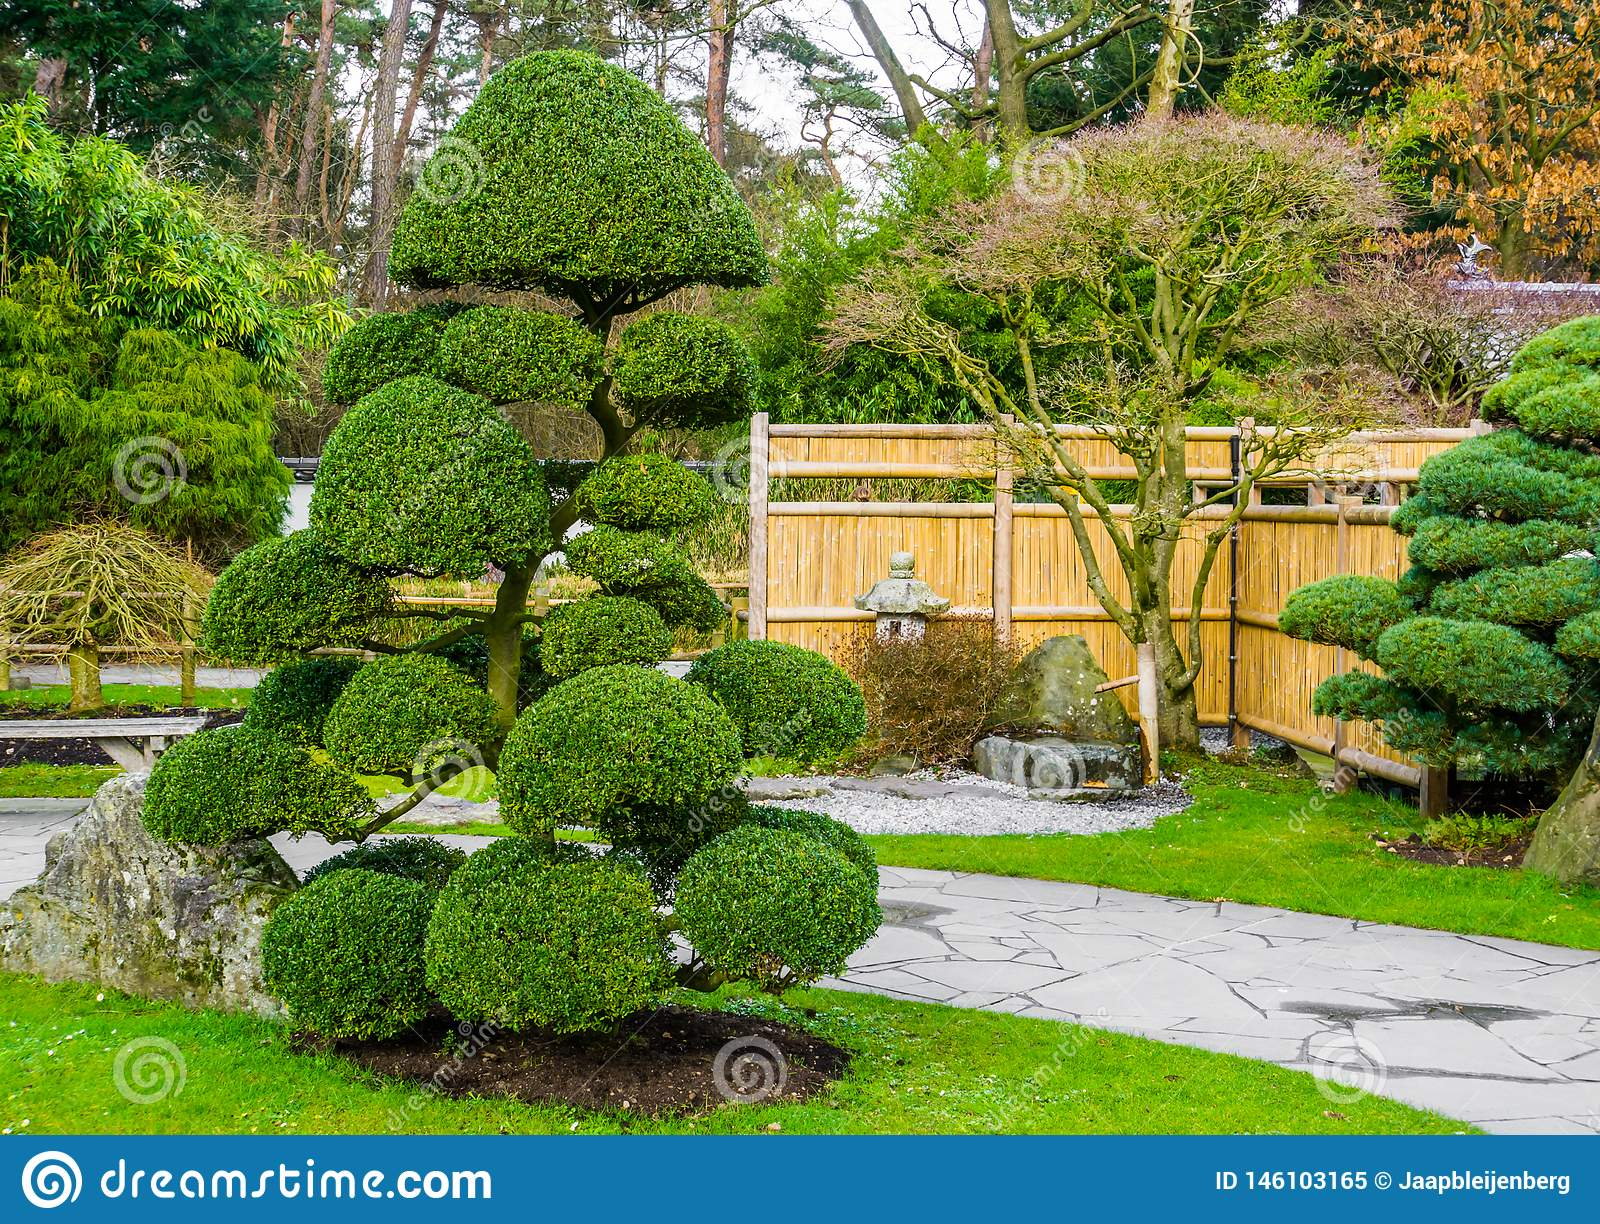 Beautiful pruned tree in a japanese garden, topiary art forms, Gardening in Asian tradition